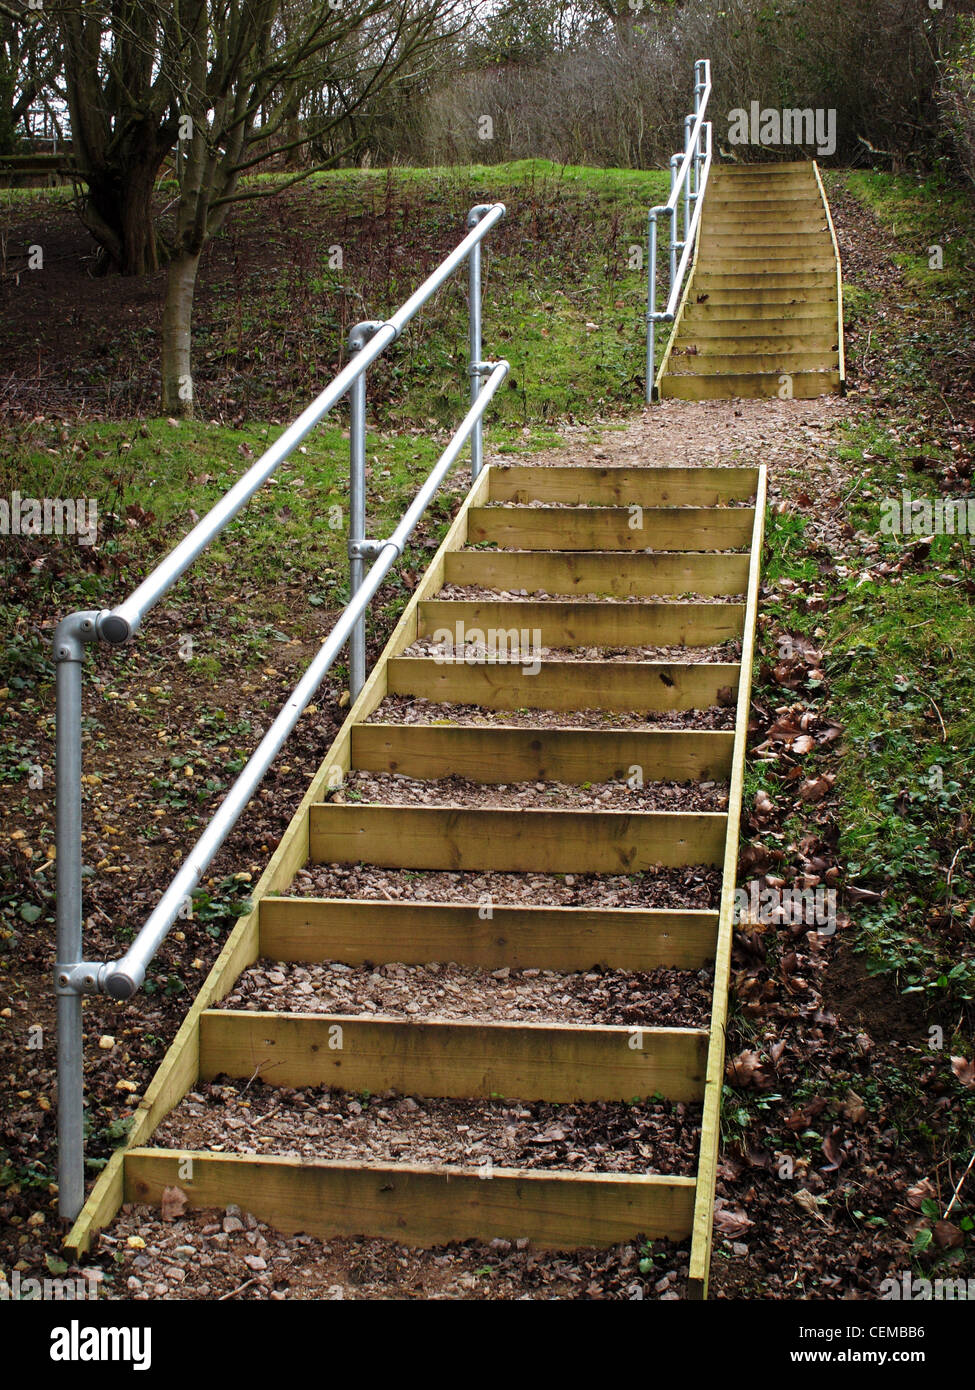 A staircase on a pathway out in the countryside, with a handrail for the safety of walkers - Stock Image